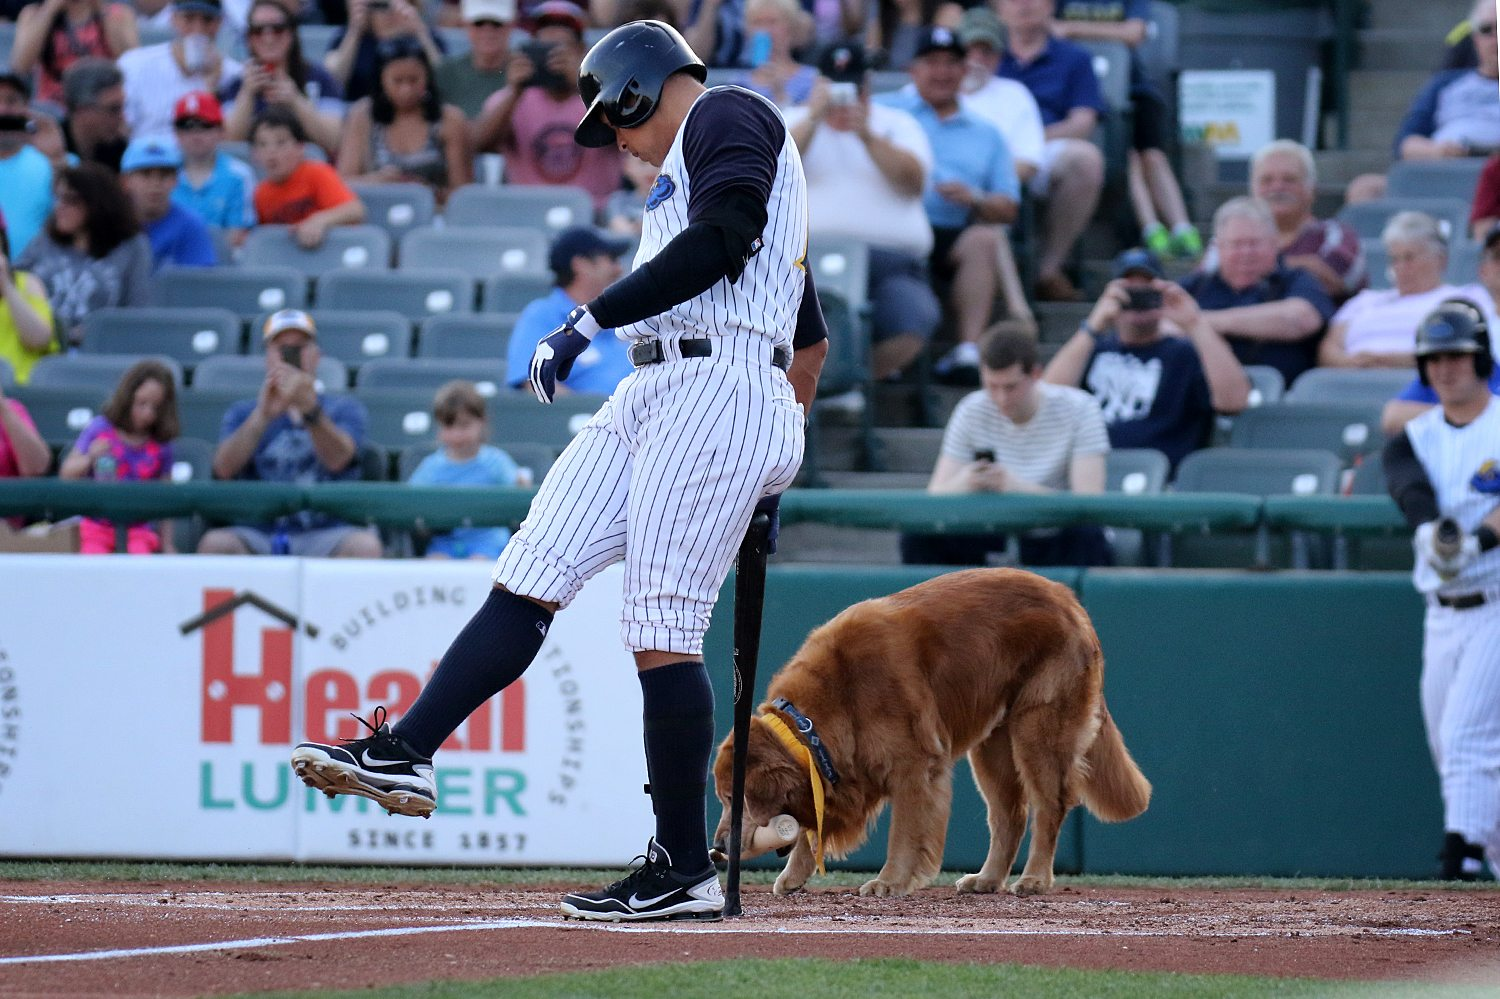 New York Yankees slugger Alex Rodriguez prepares to bat in the first inning as Bat Dog Derby does his work at ARM & HAMMER Park in Trenton on Wednesday, May 25, 2016 during a game against the New Hampshire Fisher Cats. Rodriguez joined the Double A Yankee farm team for a second day as part of a rehab assignment. Photo by Martin Griff